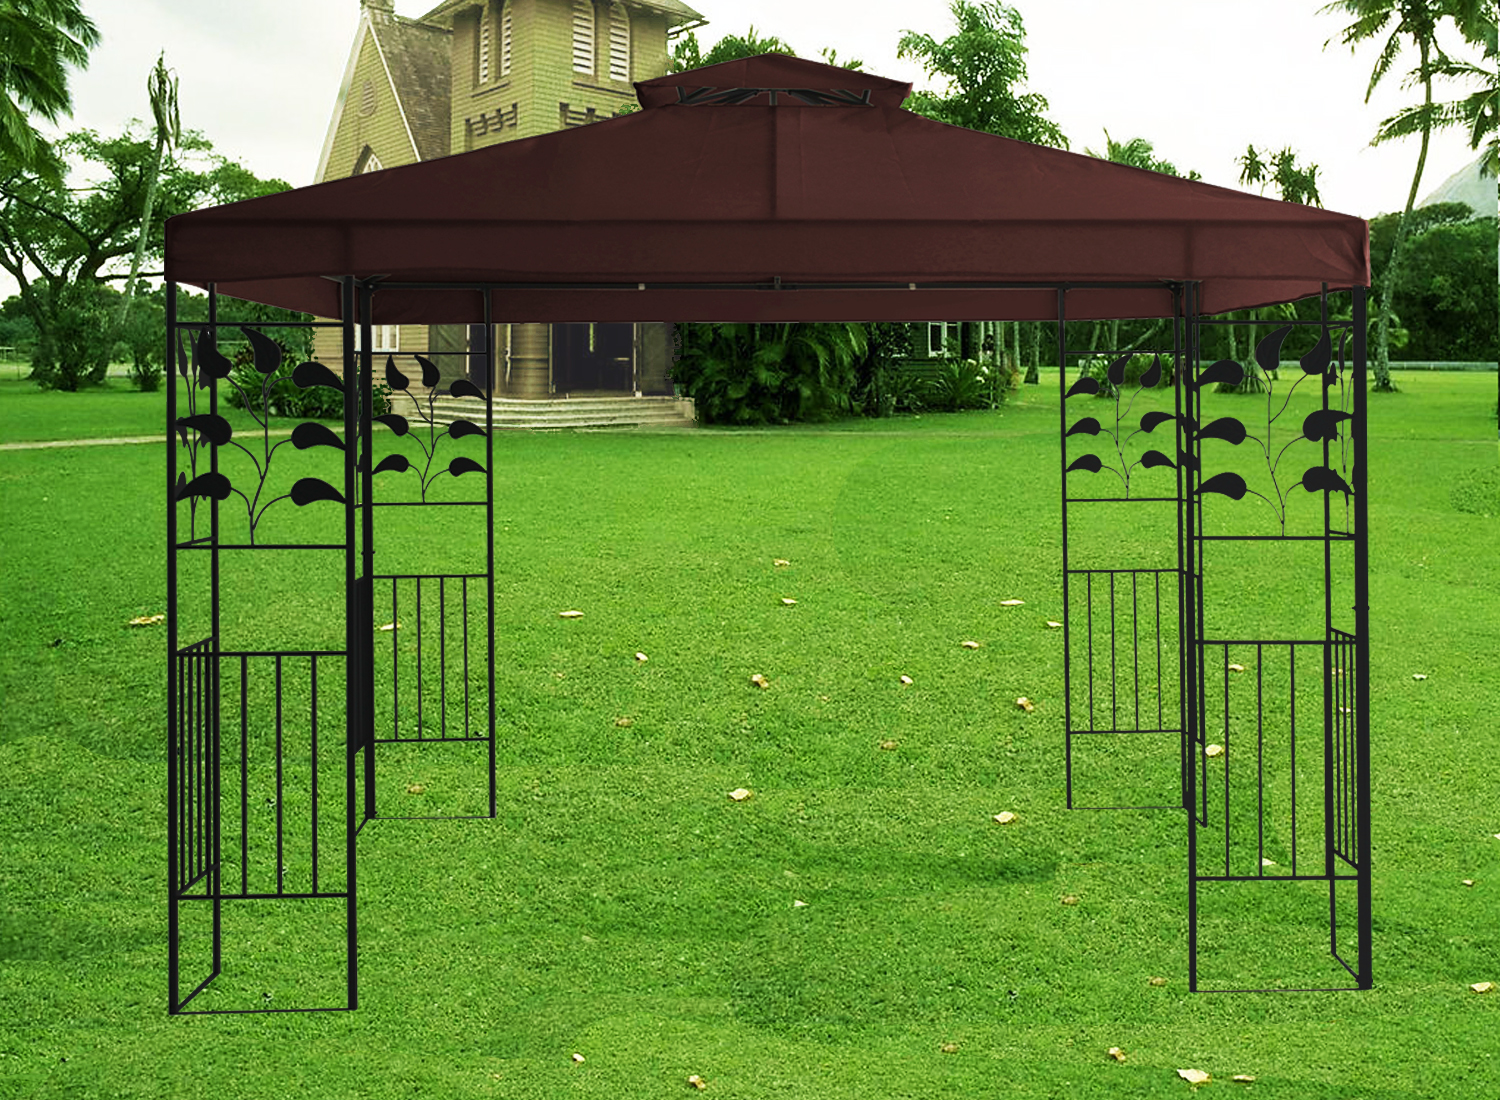 3m pavilion metal gazebo awning canopy sun shade shelter. Black Bedroom Furniture Sets. Home Design Ideas